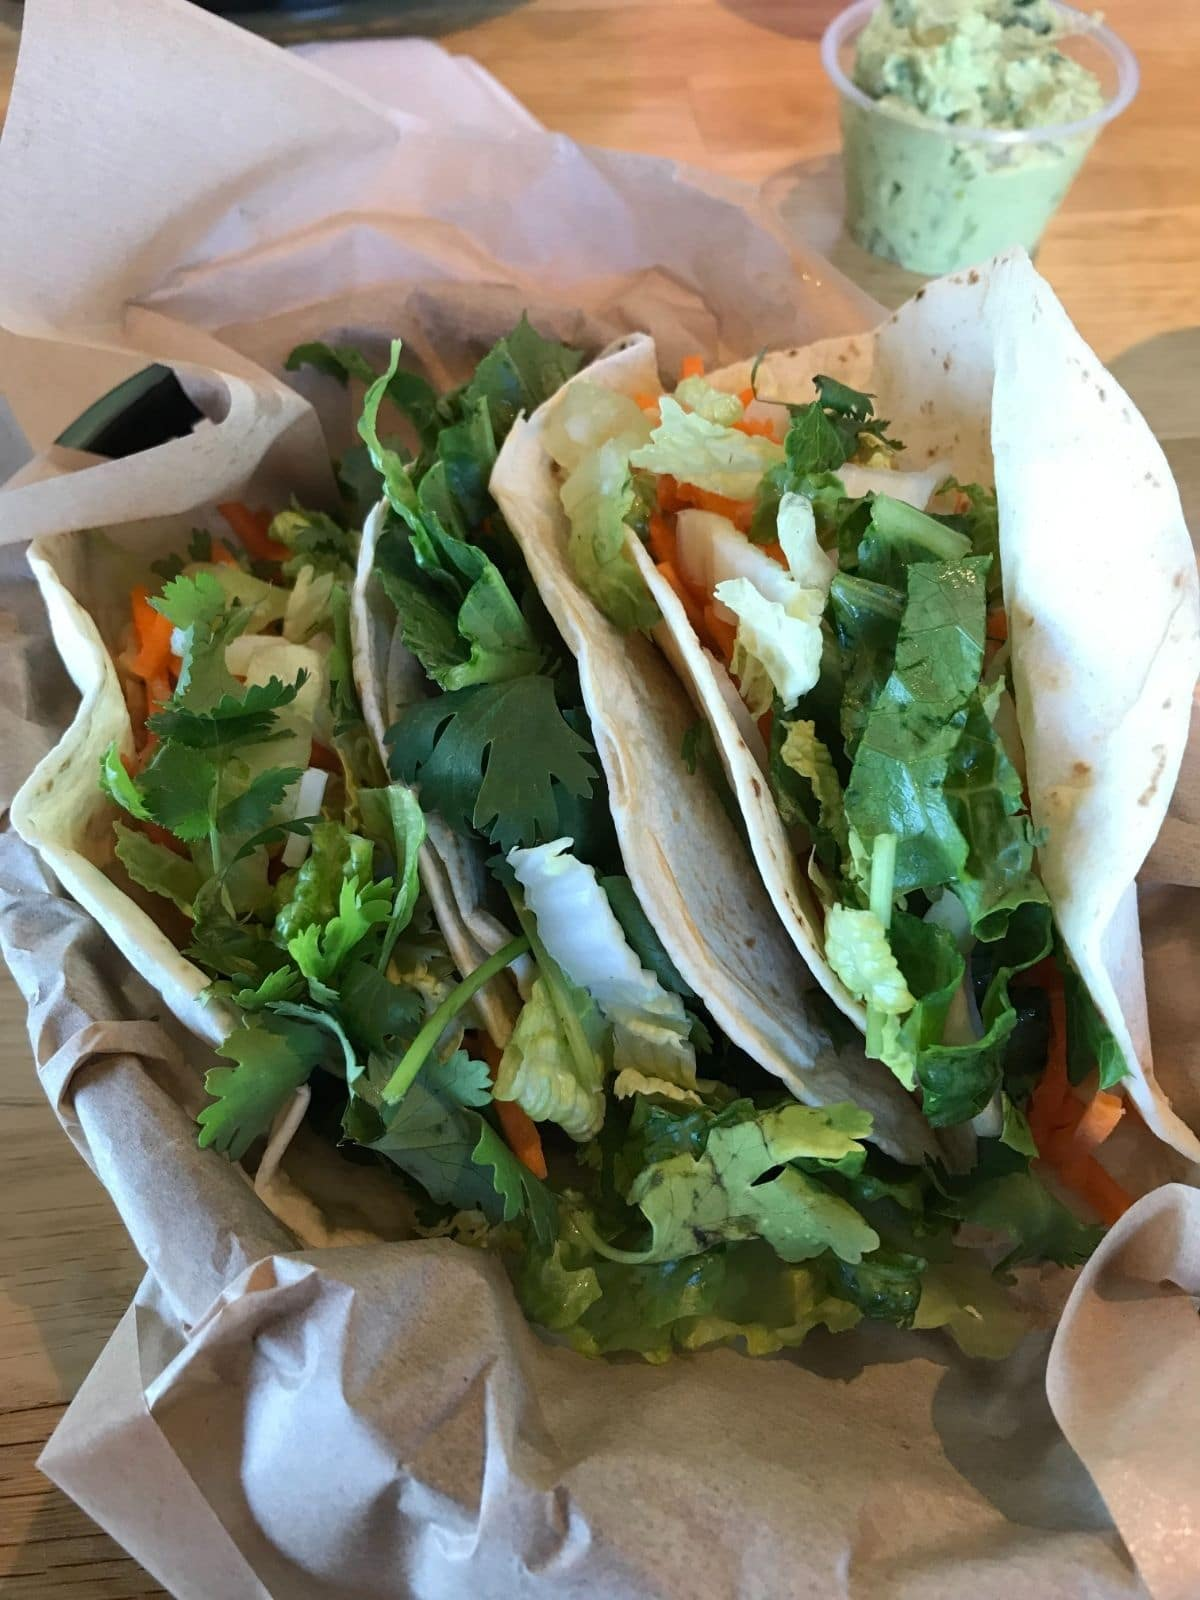 veggie tacos from zao asian cafe with lettuce, corn, carrots, cilantro, and tortillas with a cup of guacamole in the background